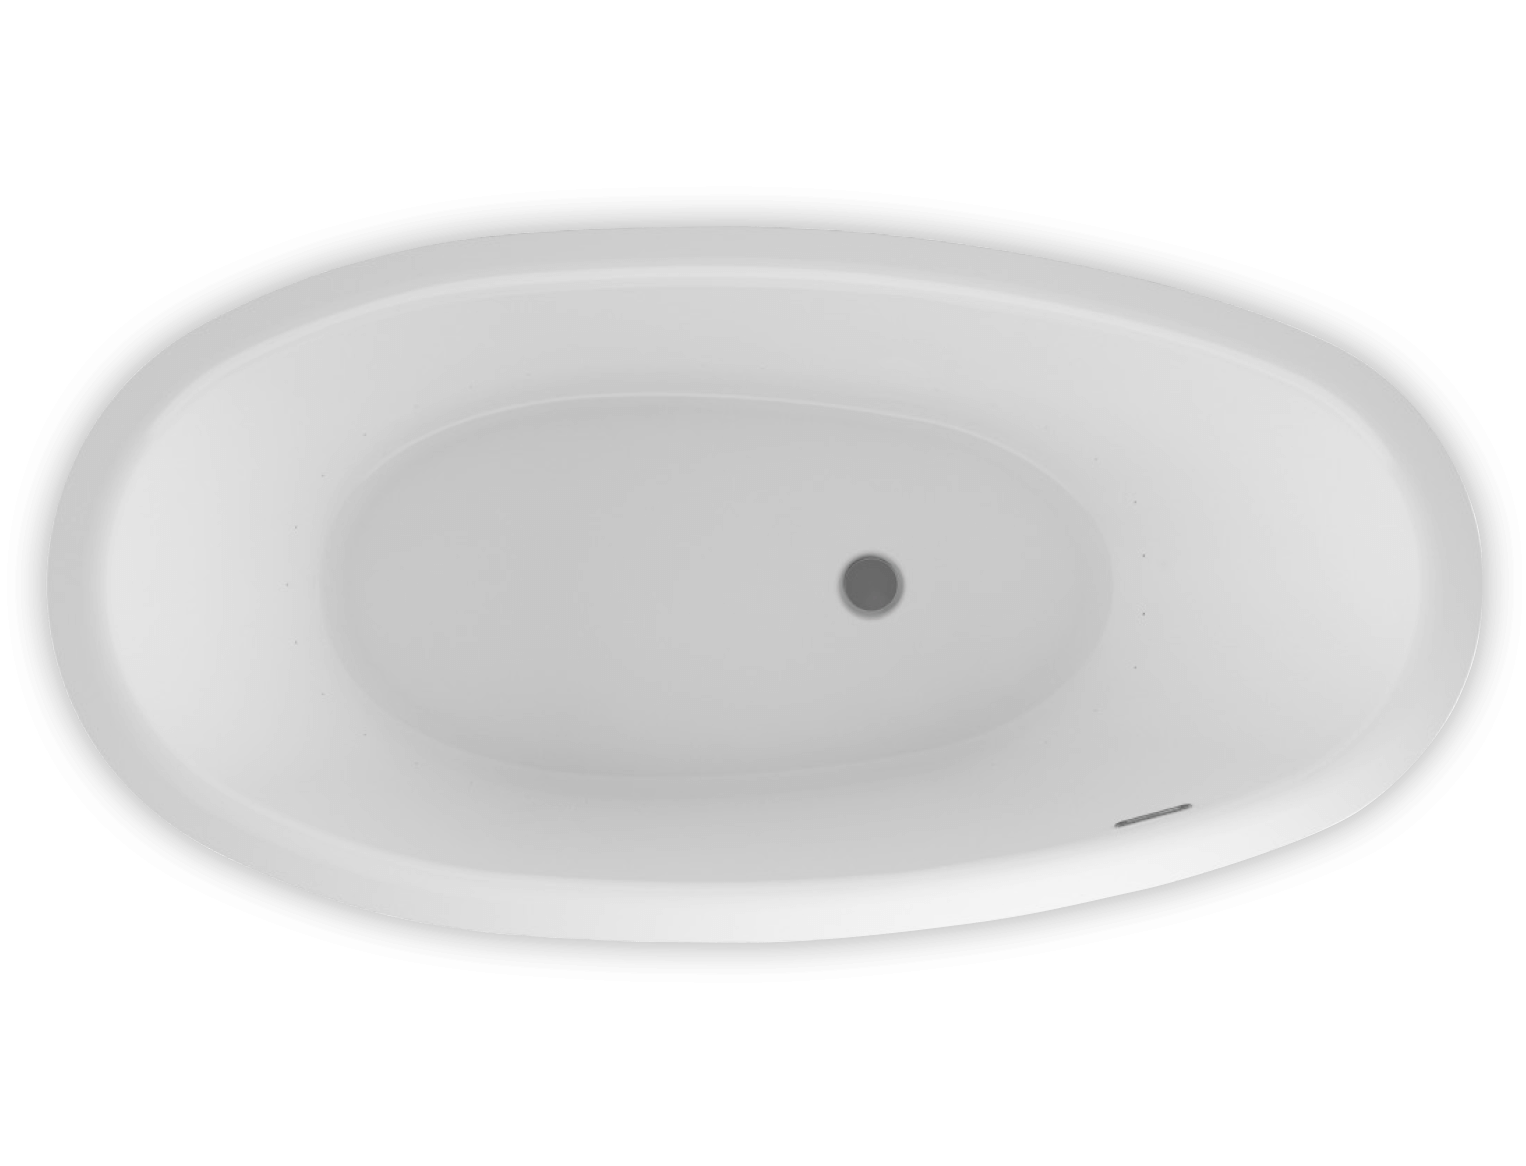 Bainultra Essencia Design freestanding air jet bathtub for your master bathroom